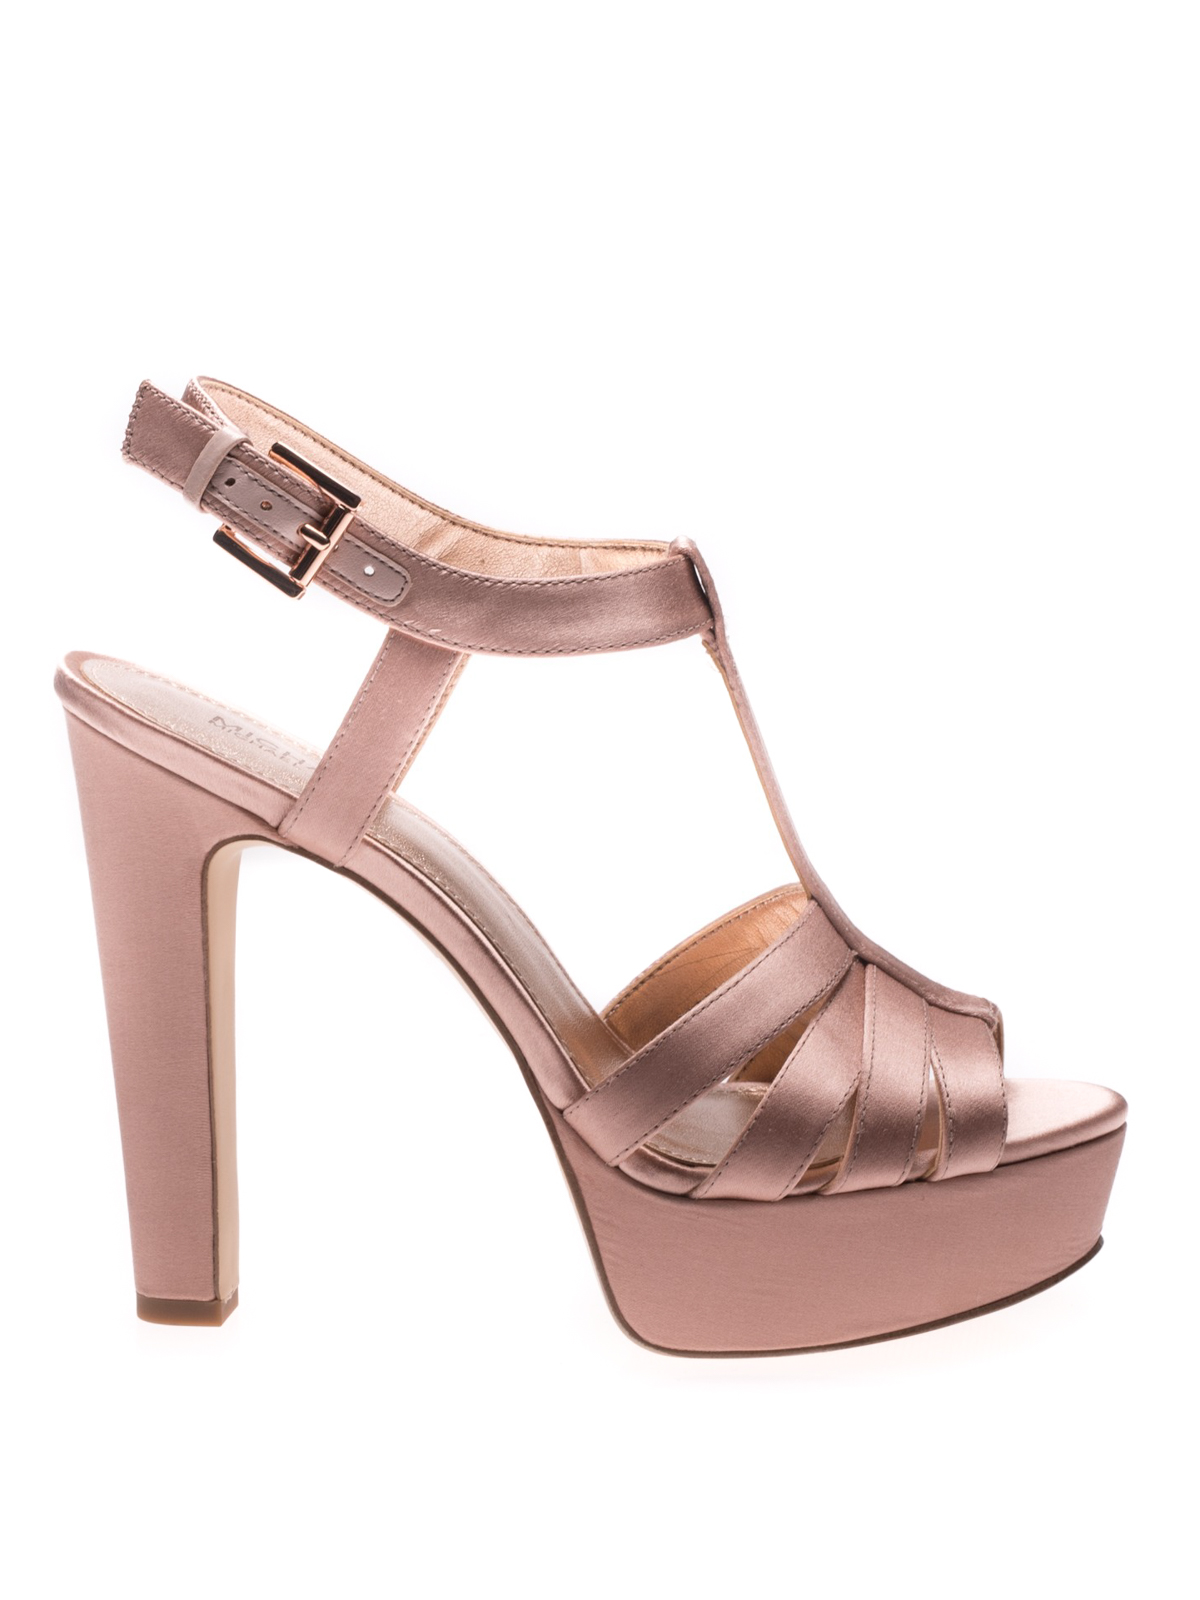 de27f8eecc8 Michael Kors - Catalina satin high heel sandals - sandals ...